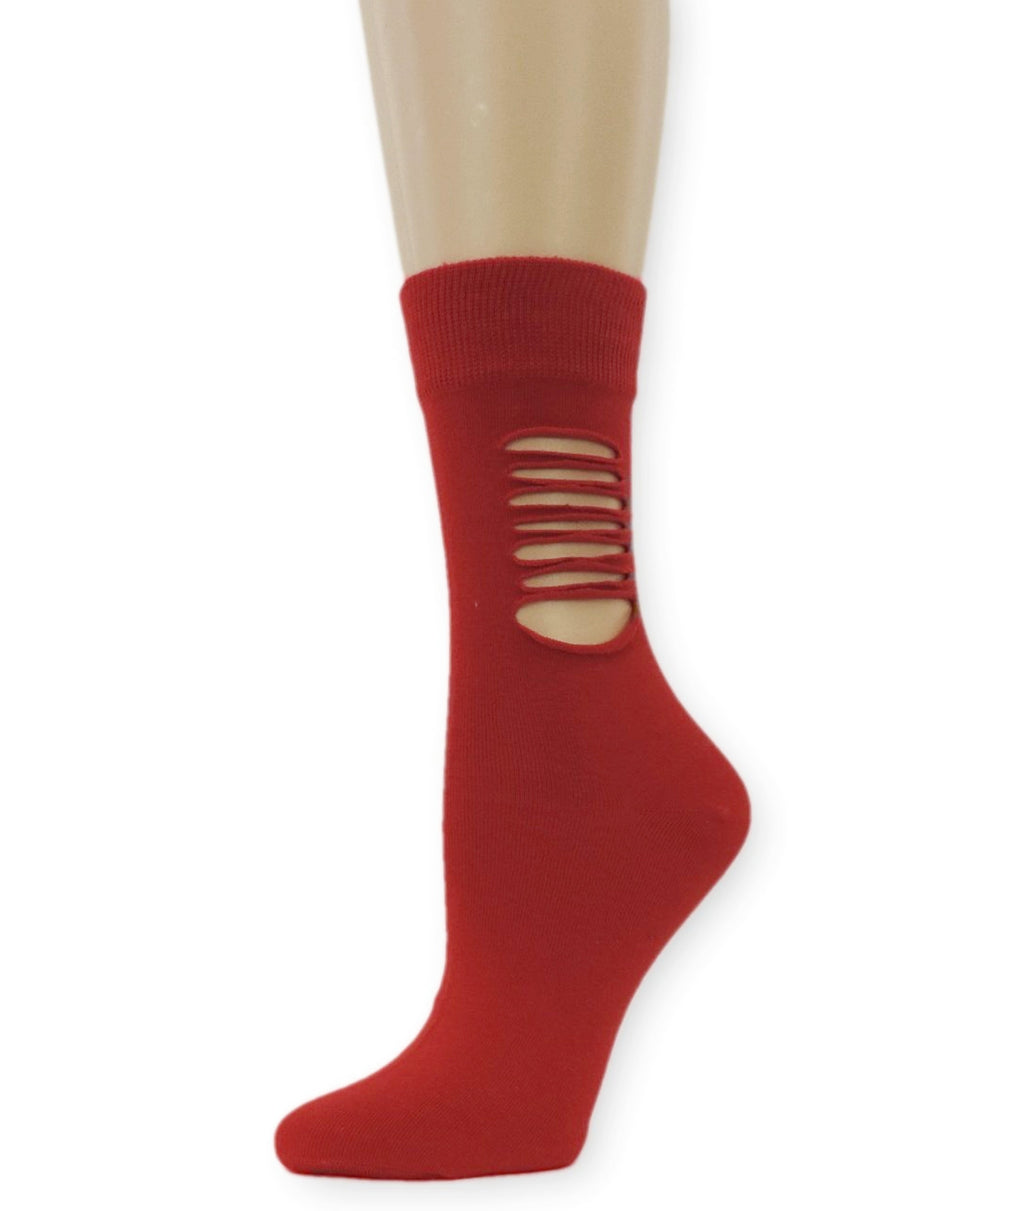 Ripped Bright Red Cotton Socks